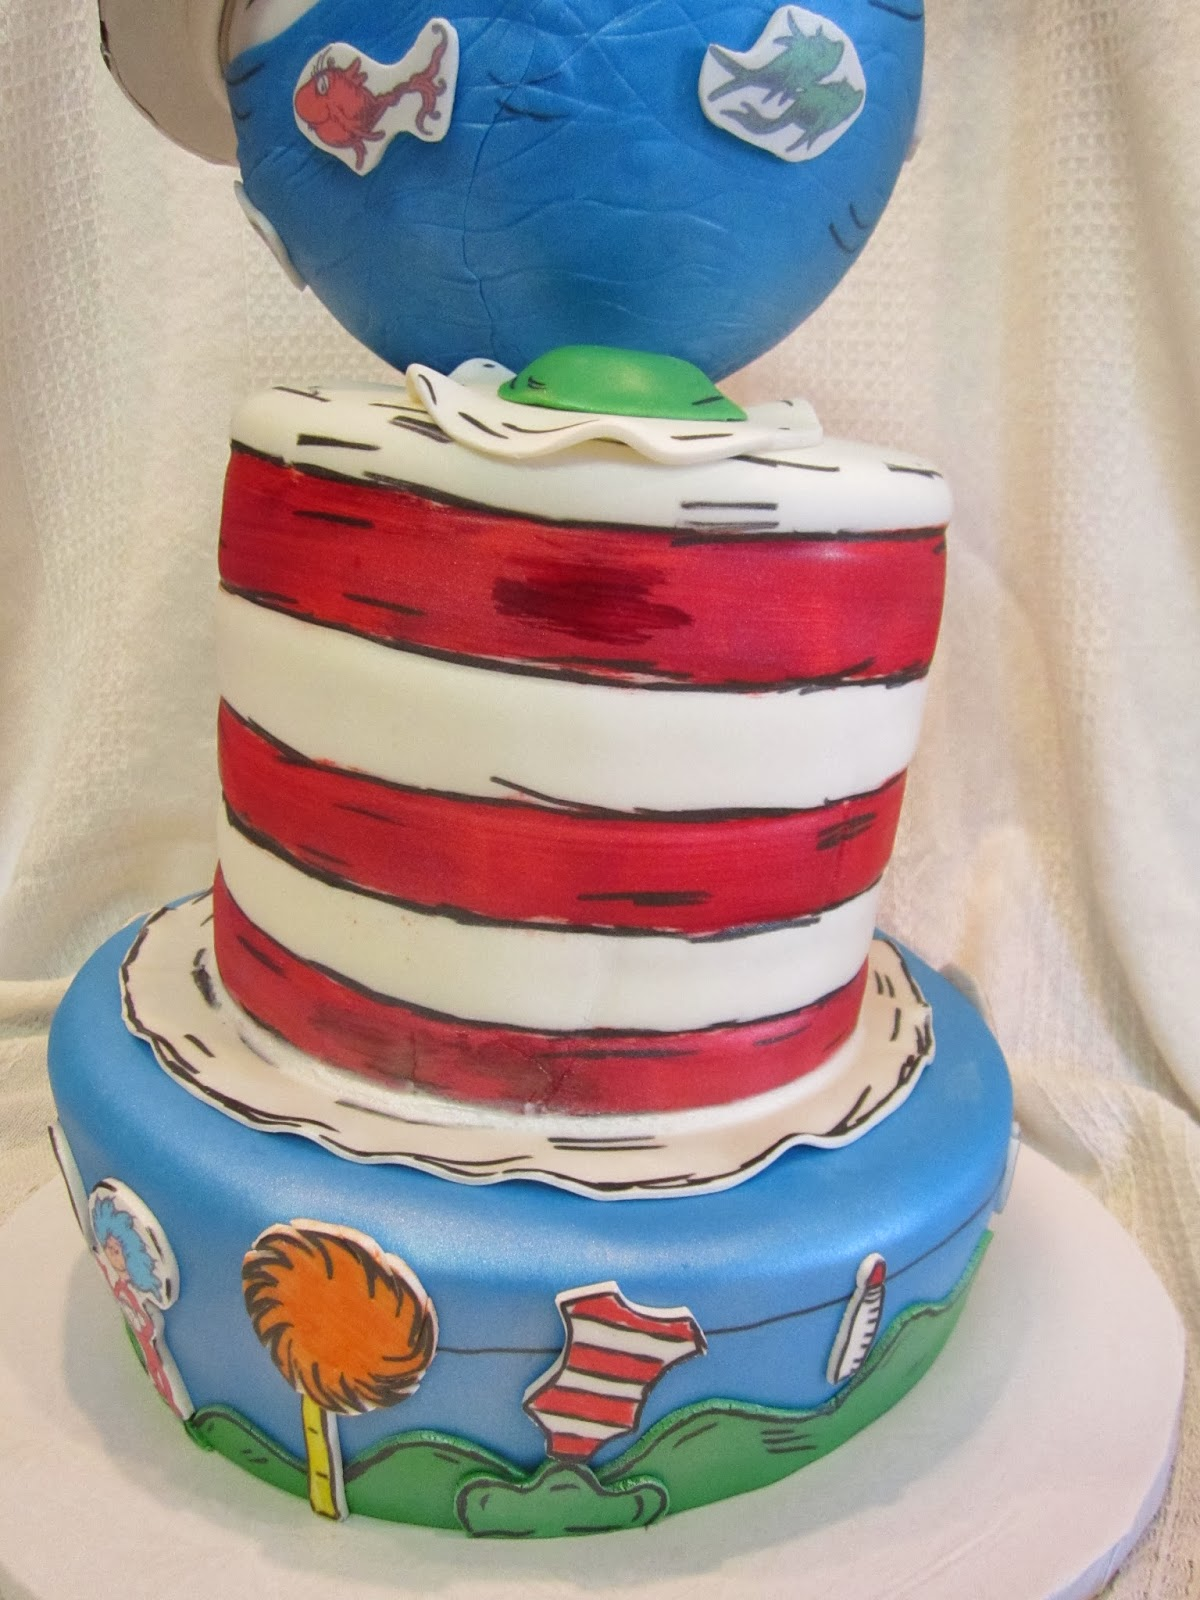 Mymonicakes Topsy Turvy Dr Suess Inspired Baby Shower